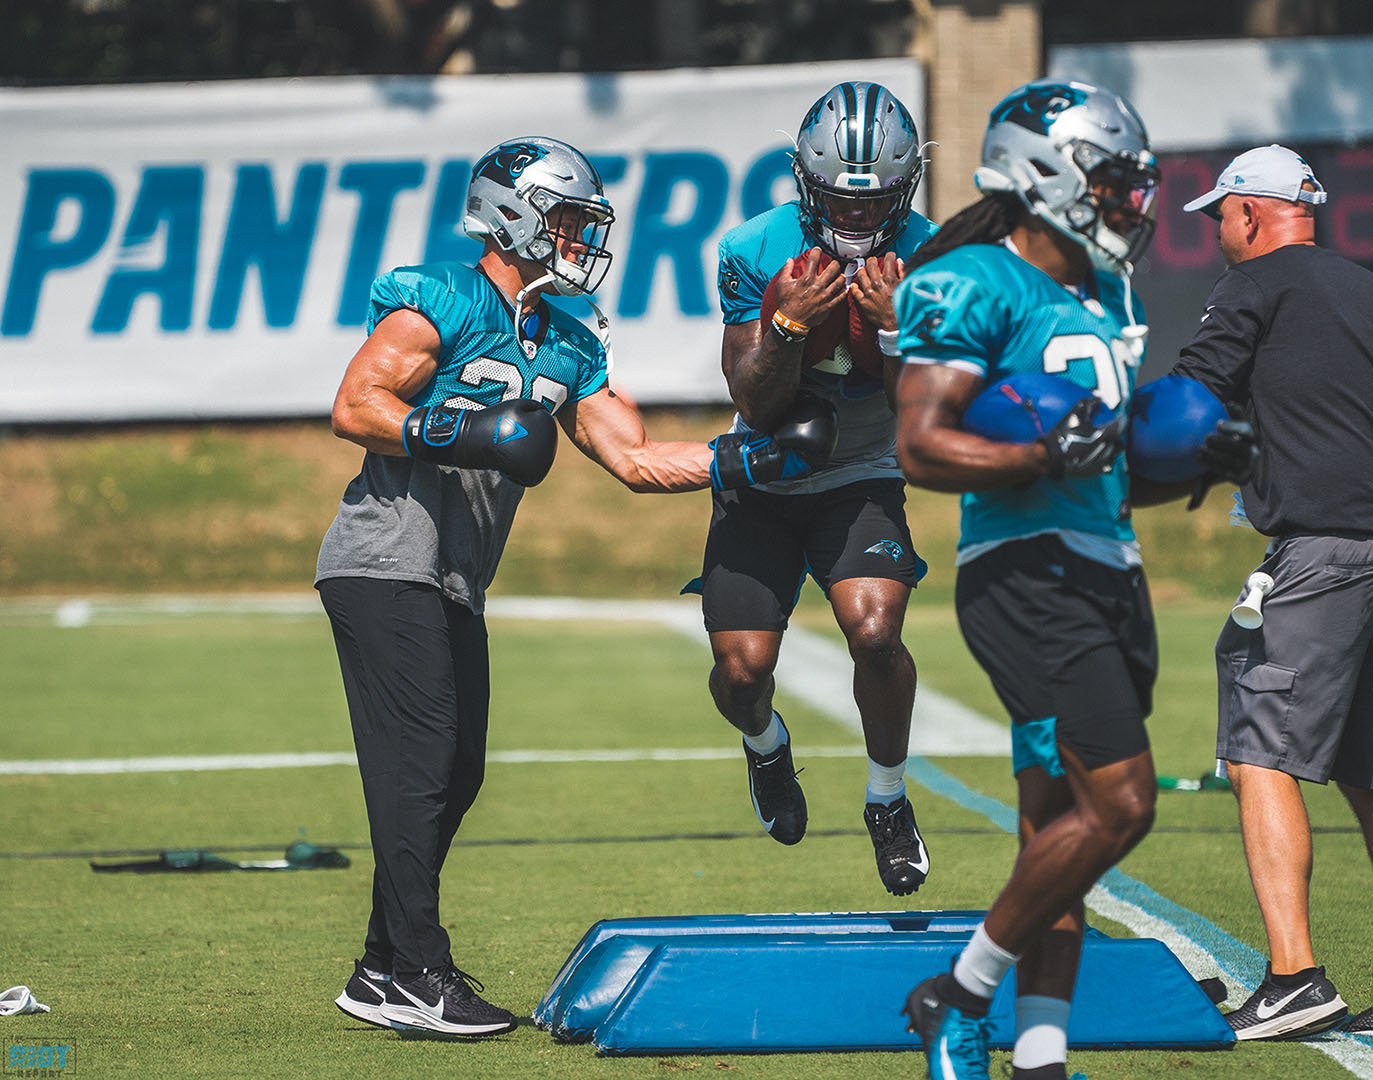 Photo Gallery: Panthers Practice | September 10, 2019